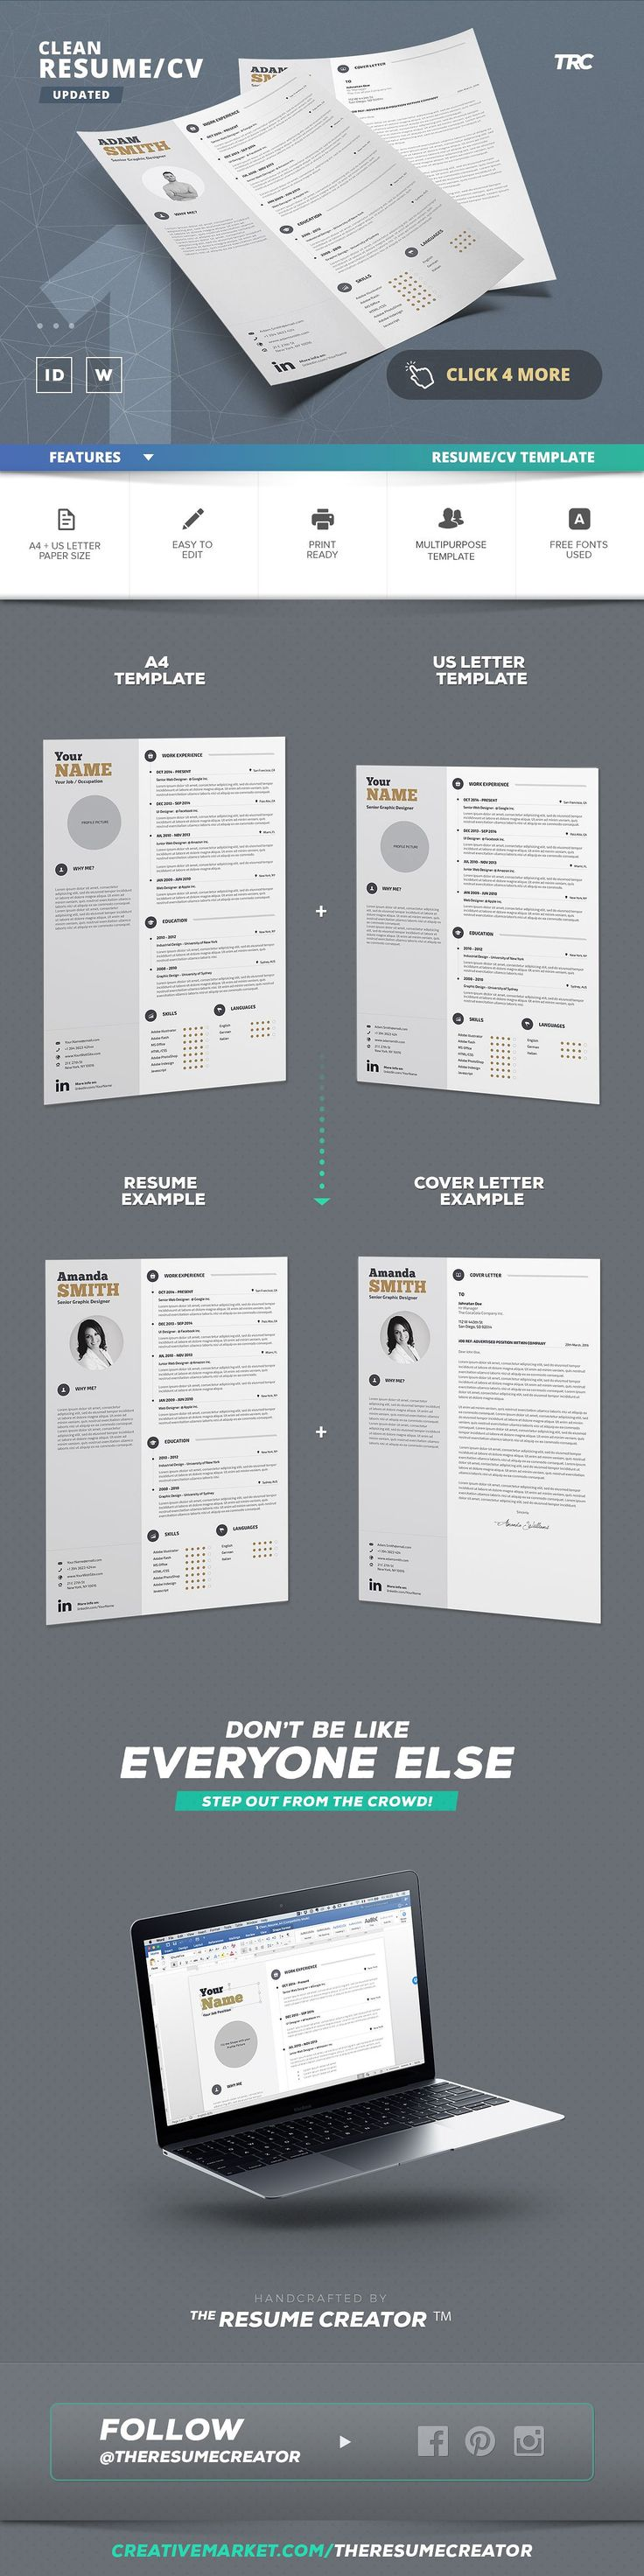 points to cover in a cover letter%0A Clean Resume Cv Template Volume   by TheResumeCreator on  creativemarket   resumecreator  theresumecreator